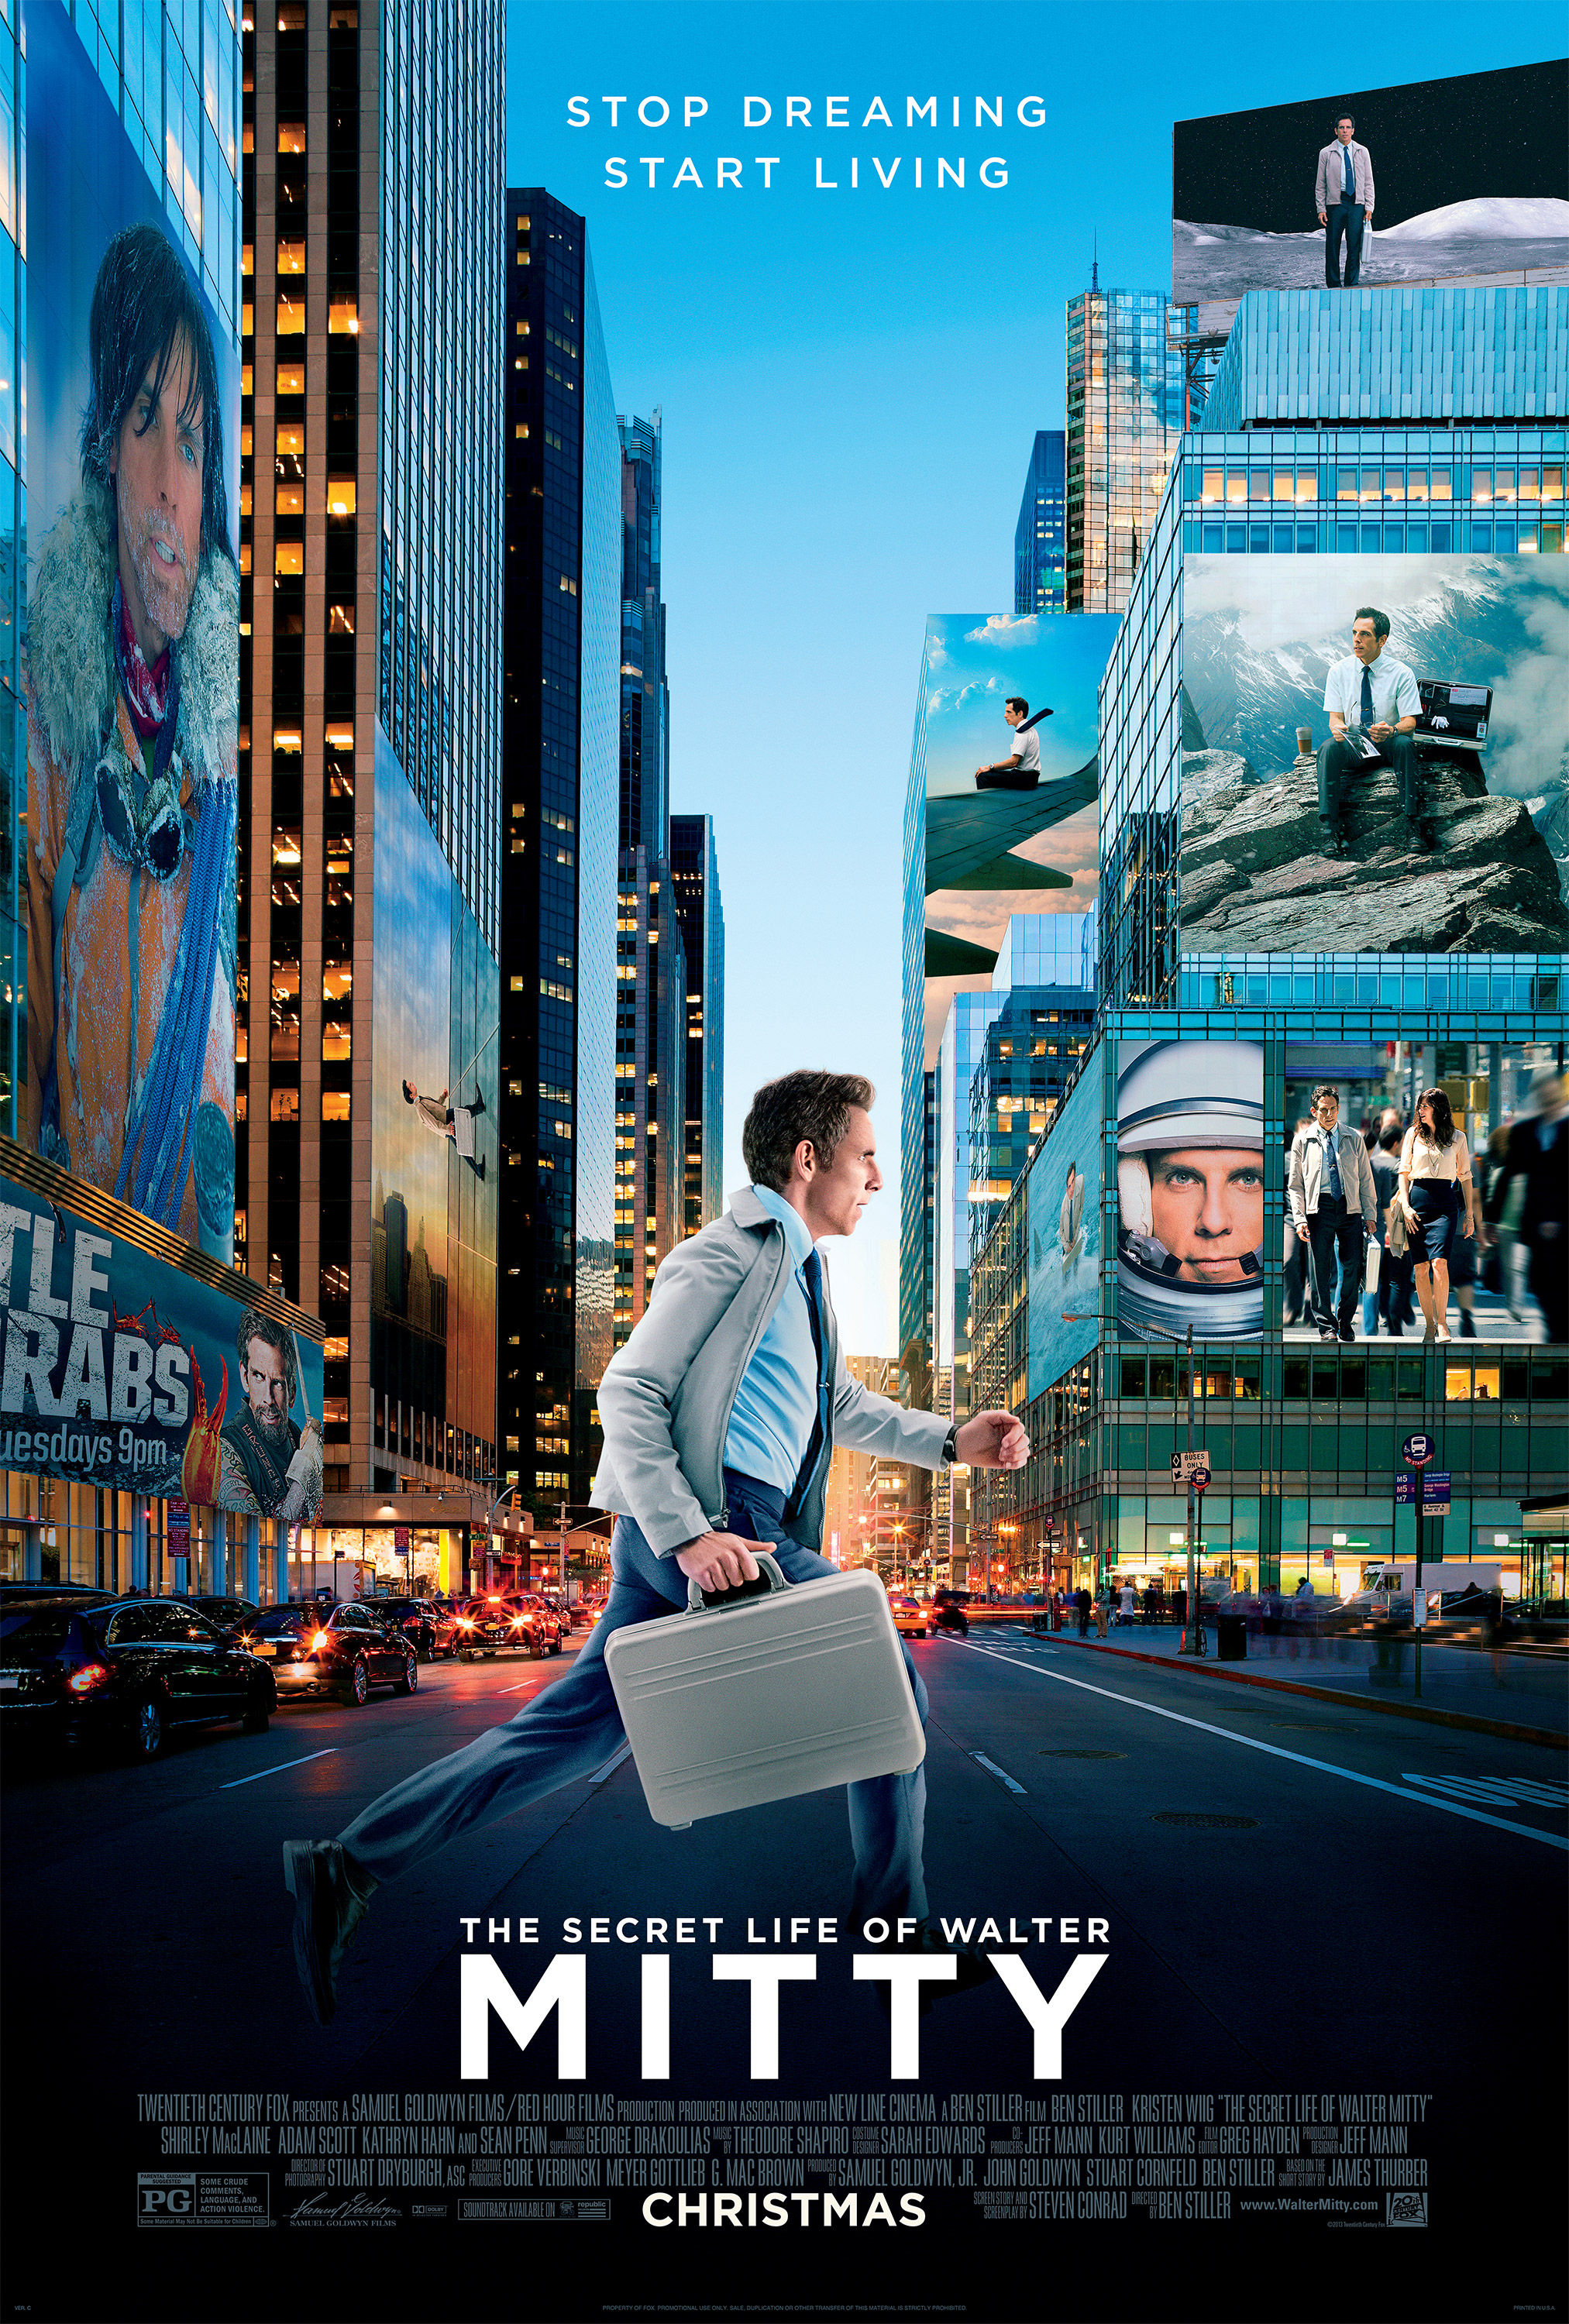 the secret life of walter mitty james thurber pdf